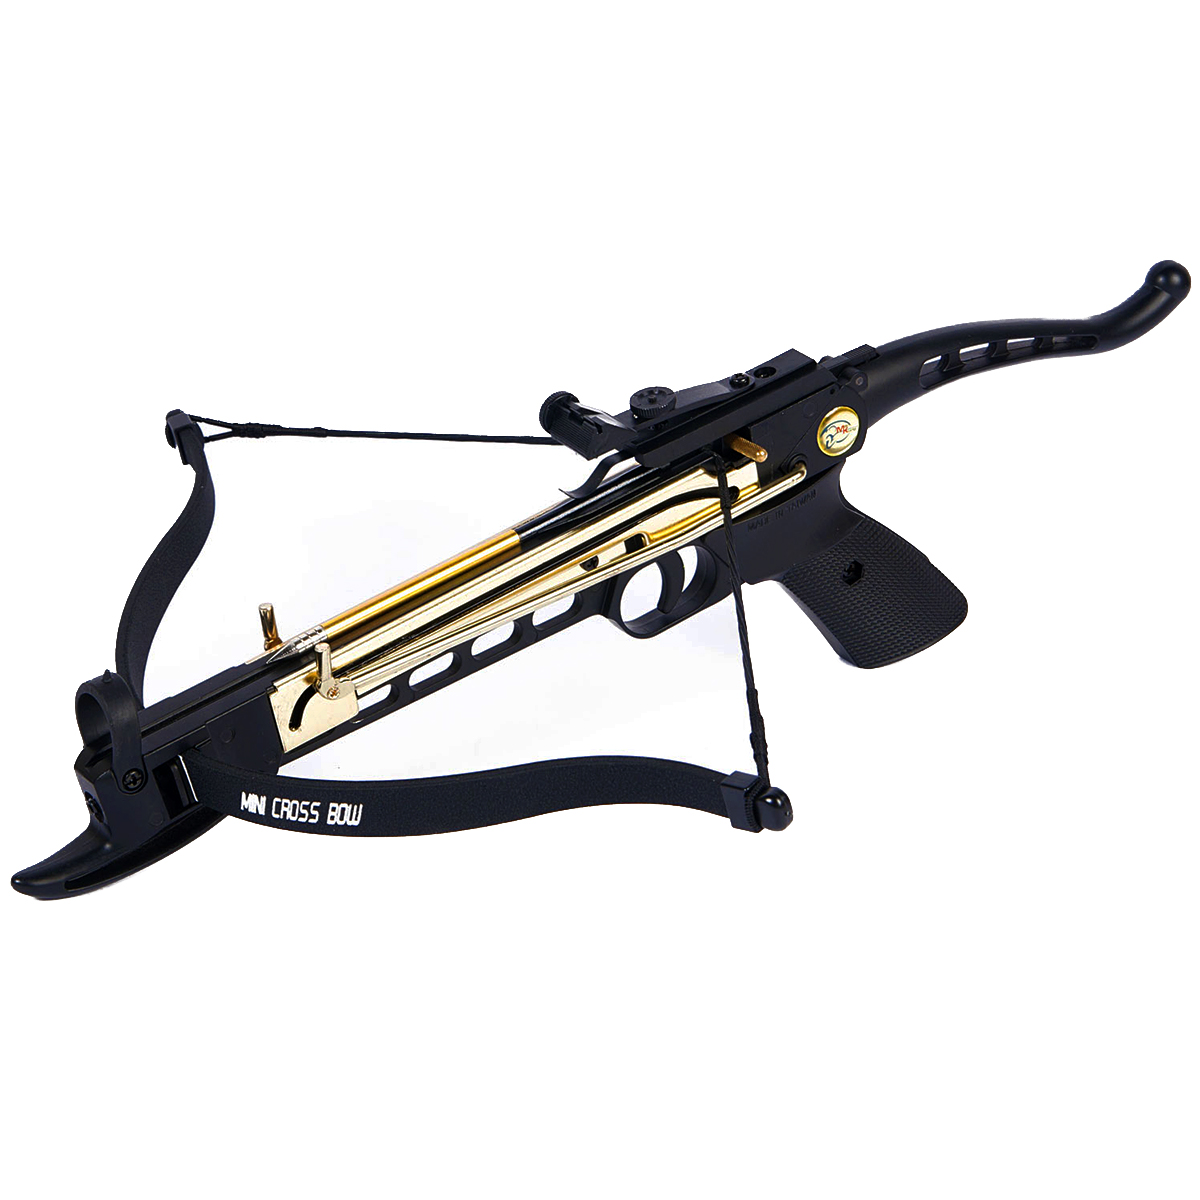 iGlow 80 lb Black   Camouflage Aluminum Self Cocking Hunting Pistol Crossbow Archery Bow +15 Bolts   Arrow +2 Strings 50 by